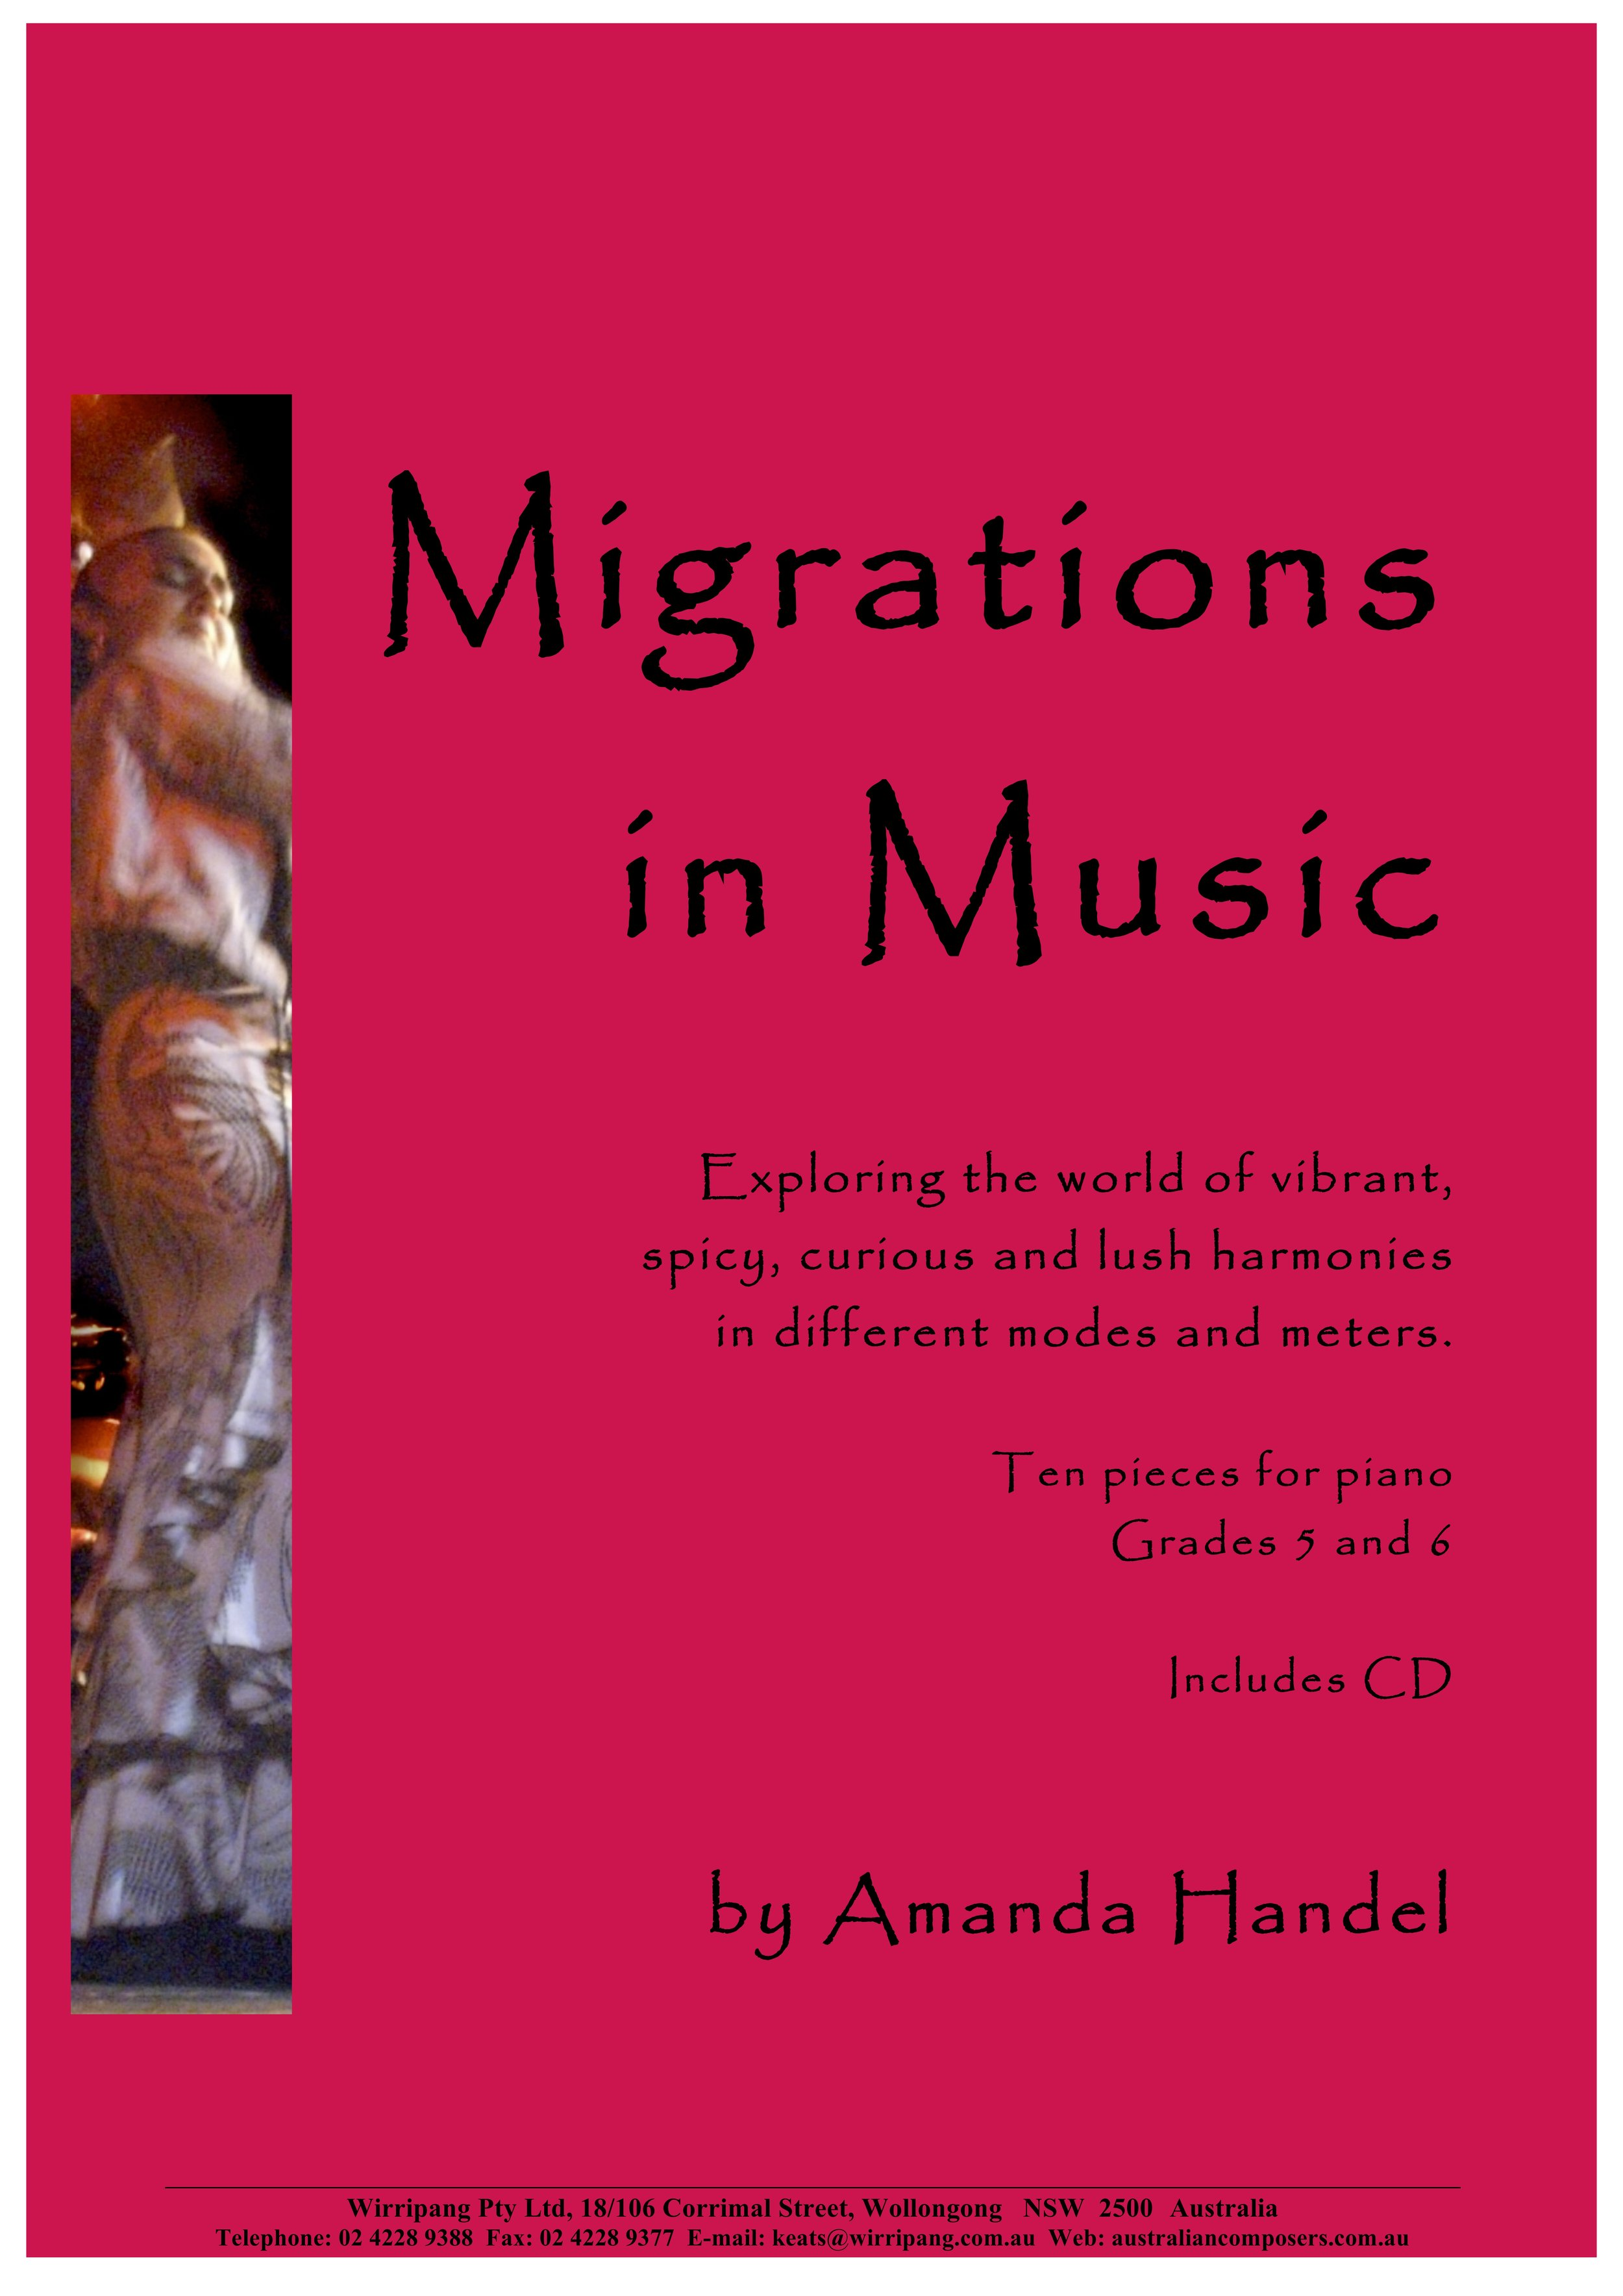 MIGRATIONS IN MUSIC GREADES 5-6